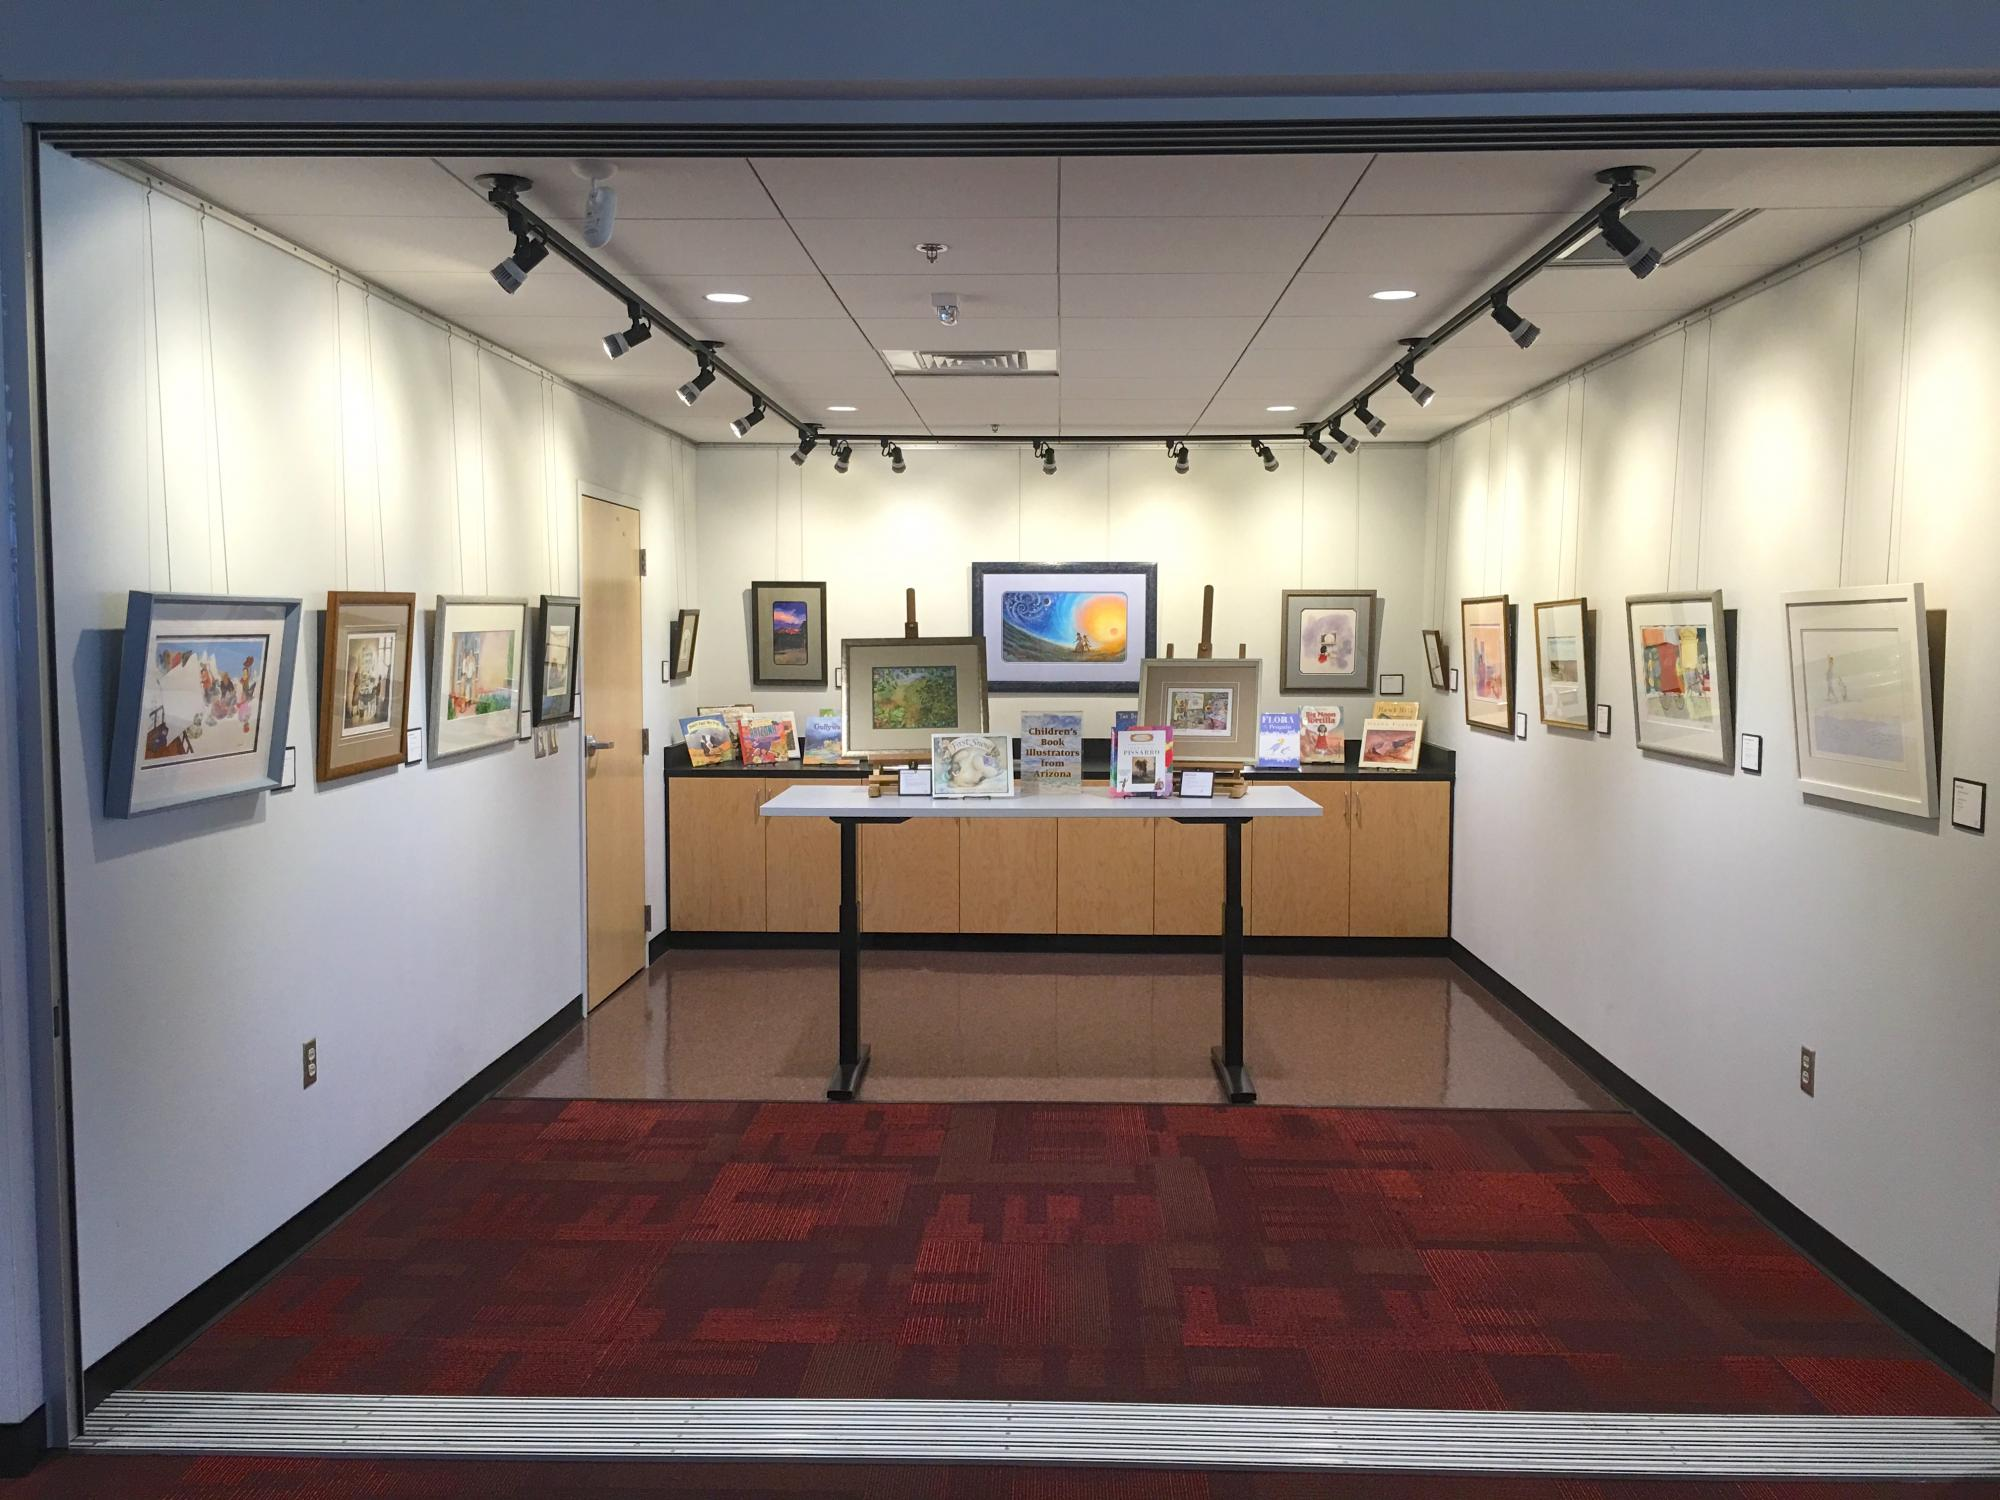 The Worlds of Words Art Studio, in the Education Building, rotates displays of original art from picture books centered on a theme.